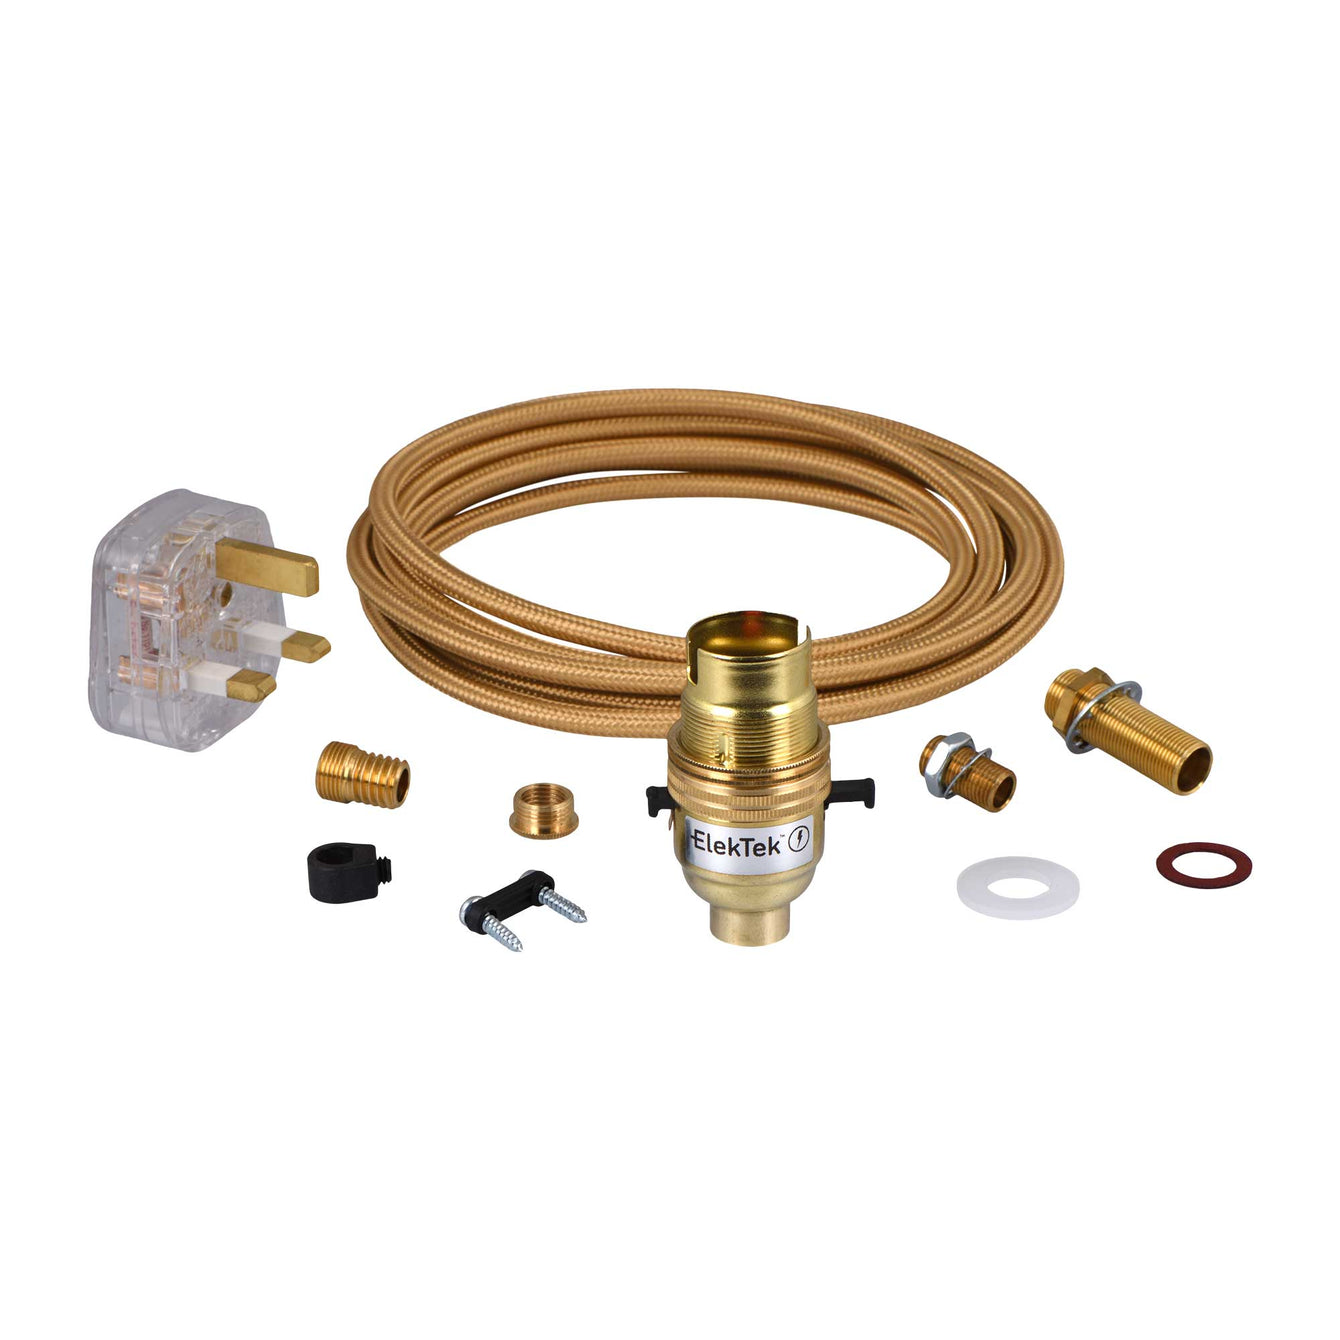 ElekTek Premium Lamp Kit Brass Safety Switch B22 Lamp Holder with Gold Flex and 3A UK Plug - Buy It Better Round